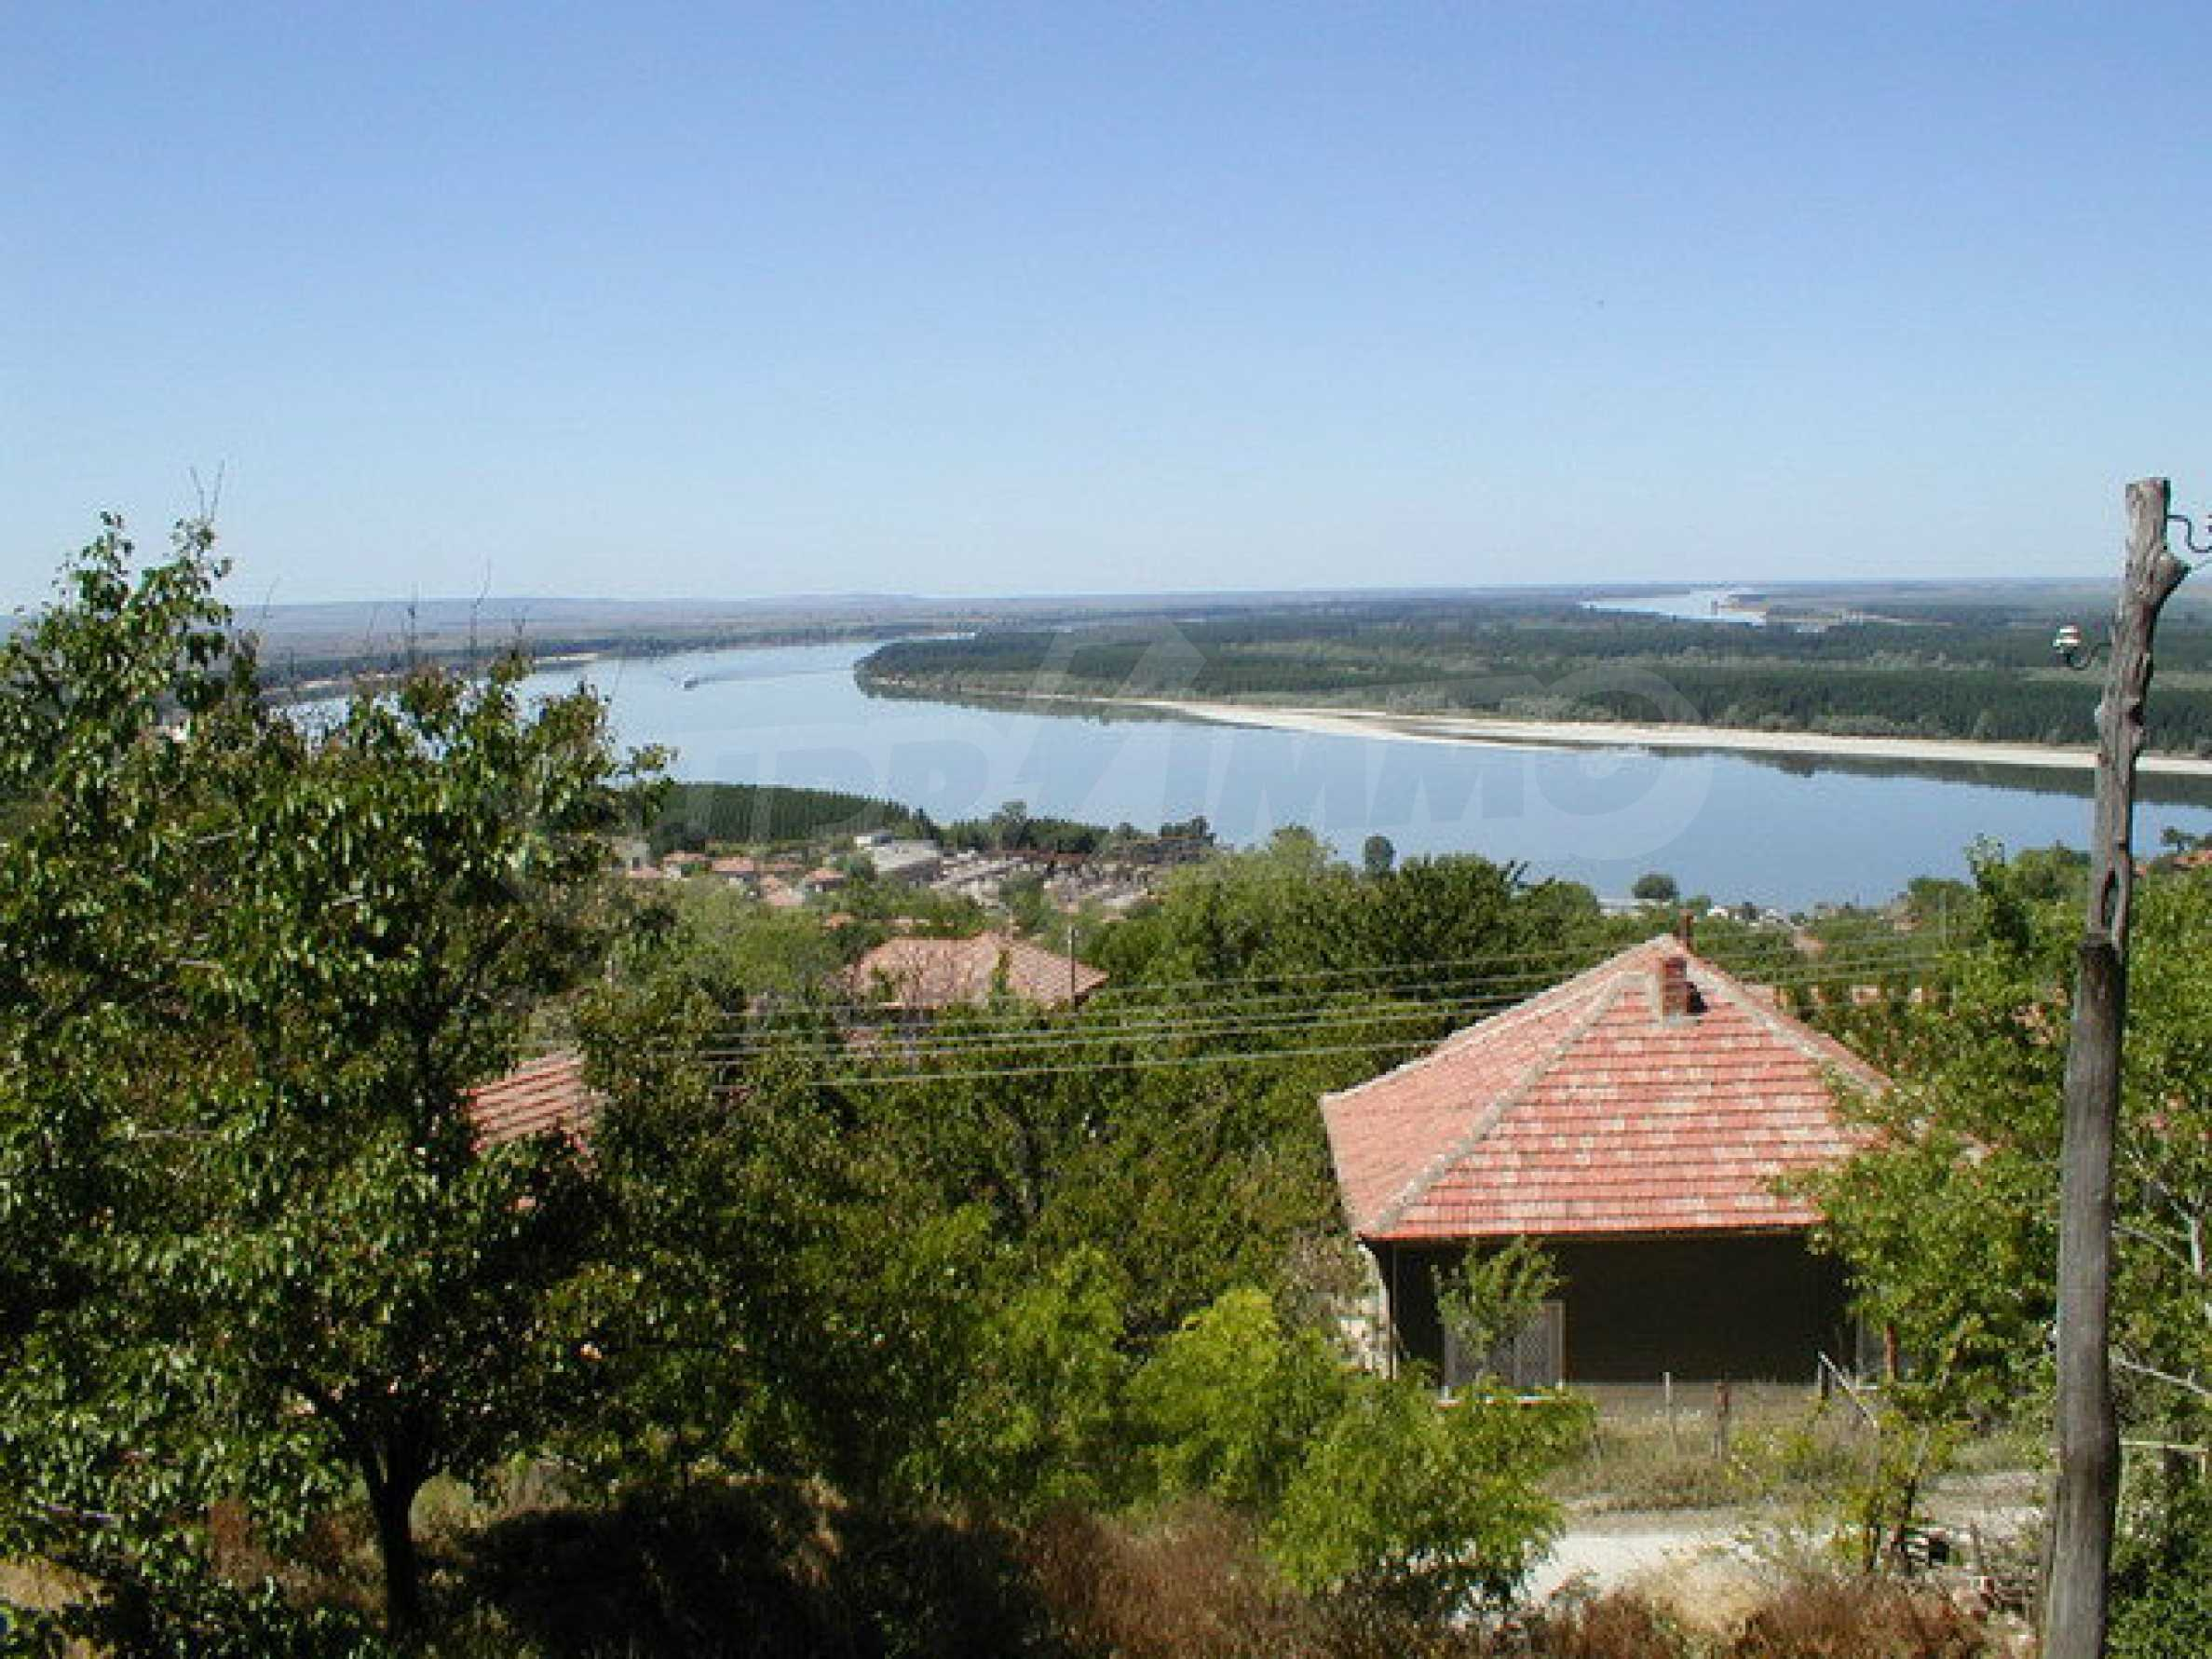 Fully renovated house with large garden and views of the Danube 15